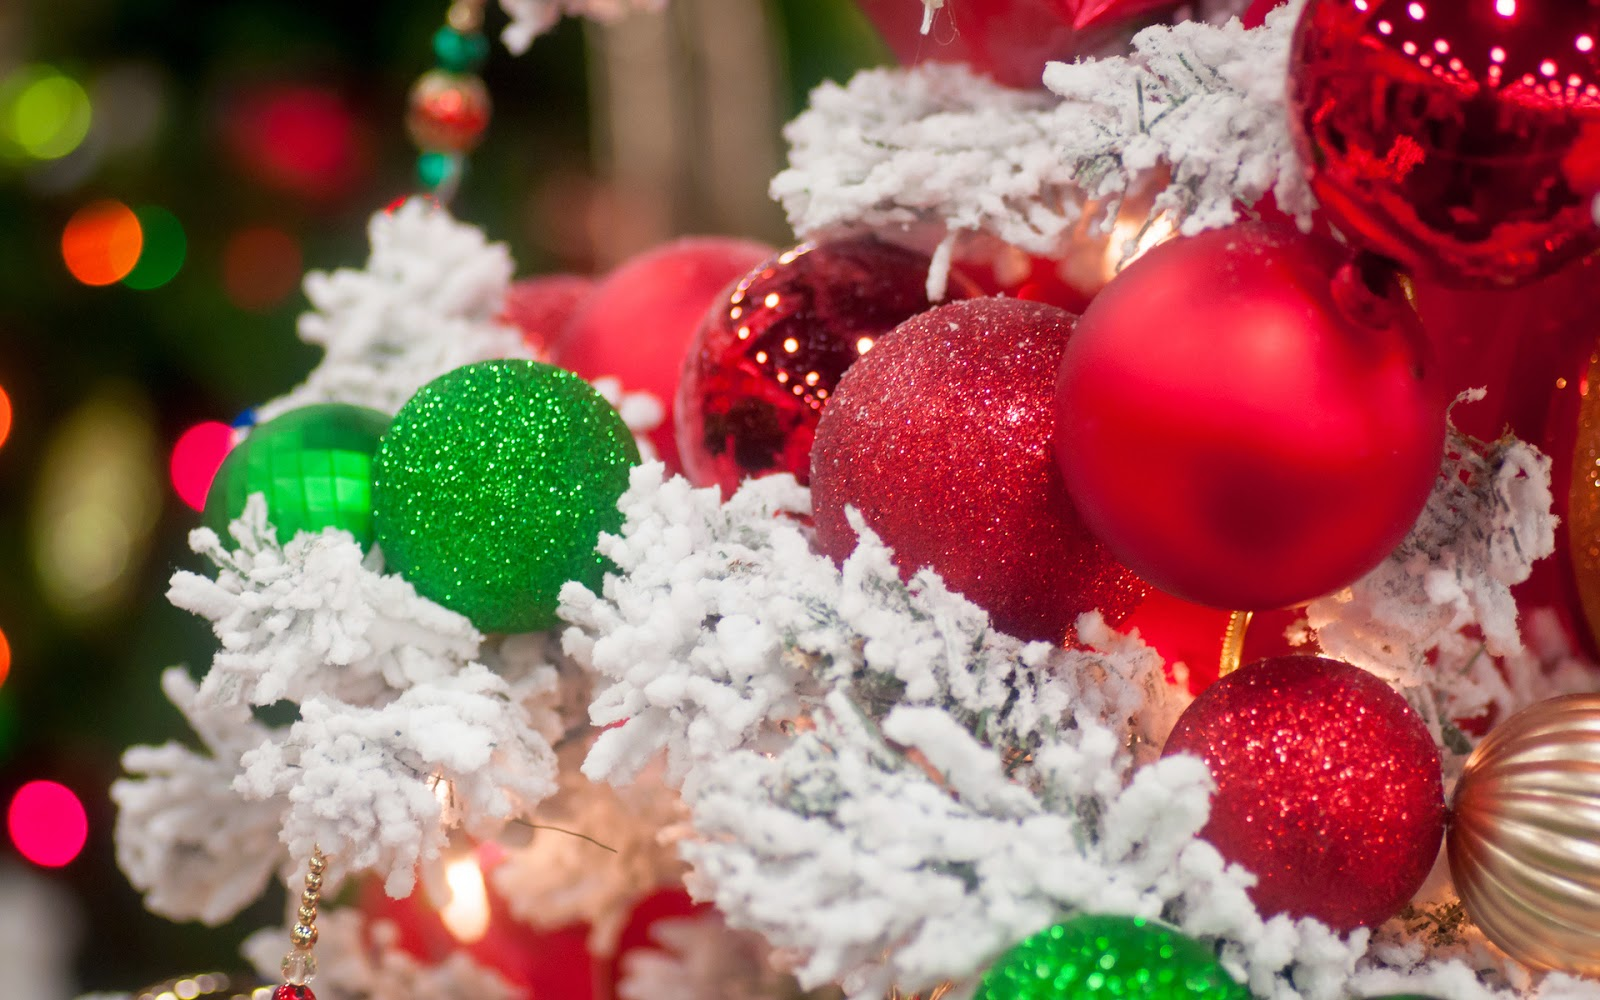 Red-and-green-Christmas-baubles-balls-decoration-in-xmas-tree-ideas-photos-images.jpg